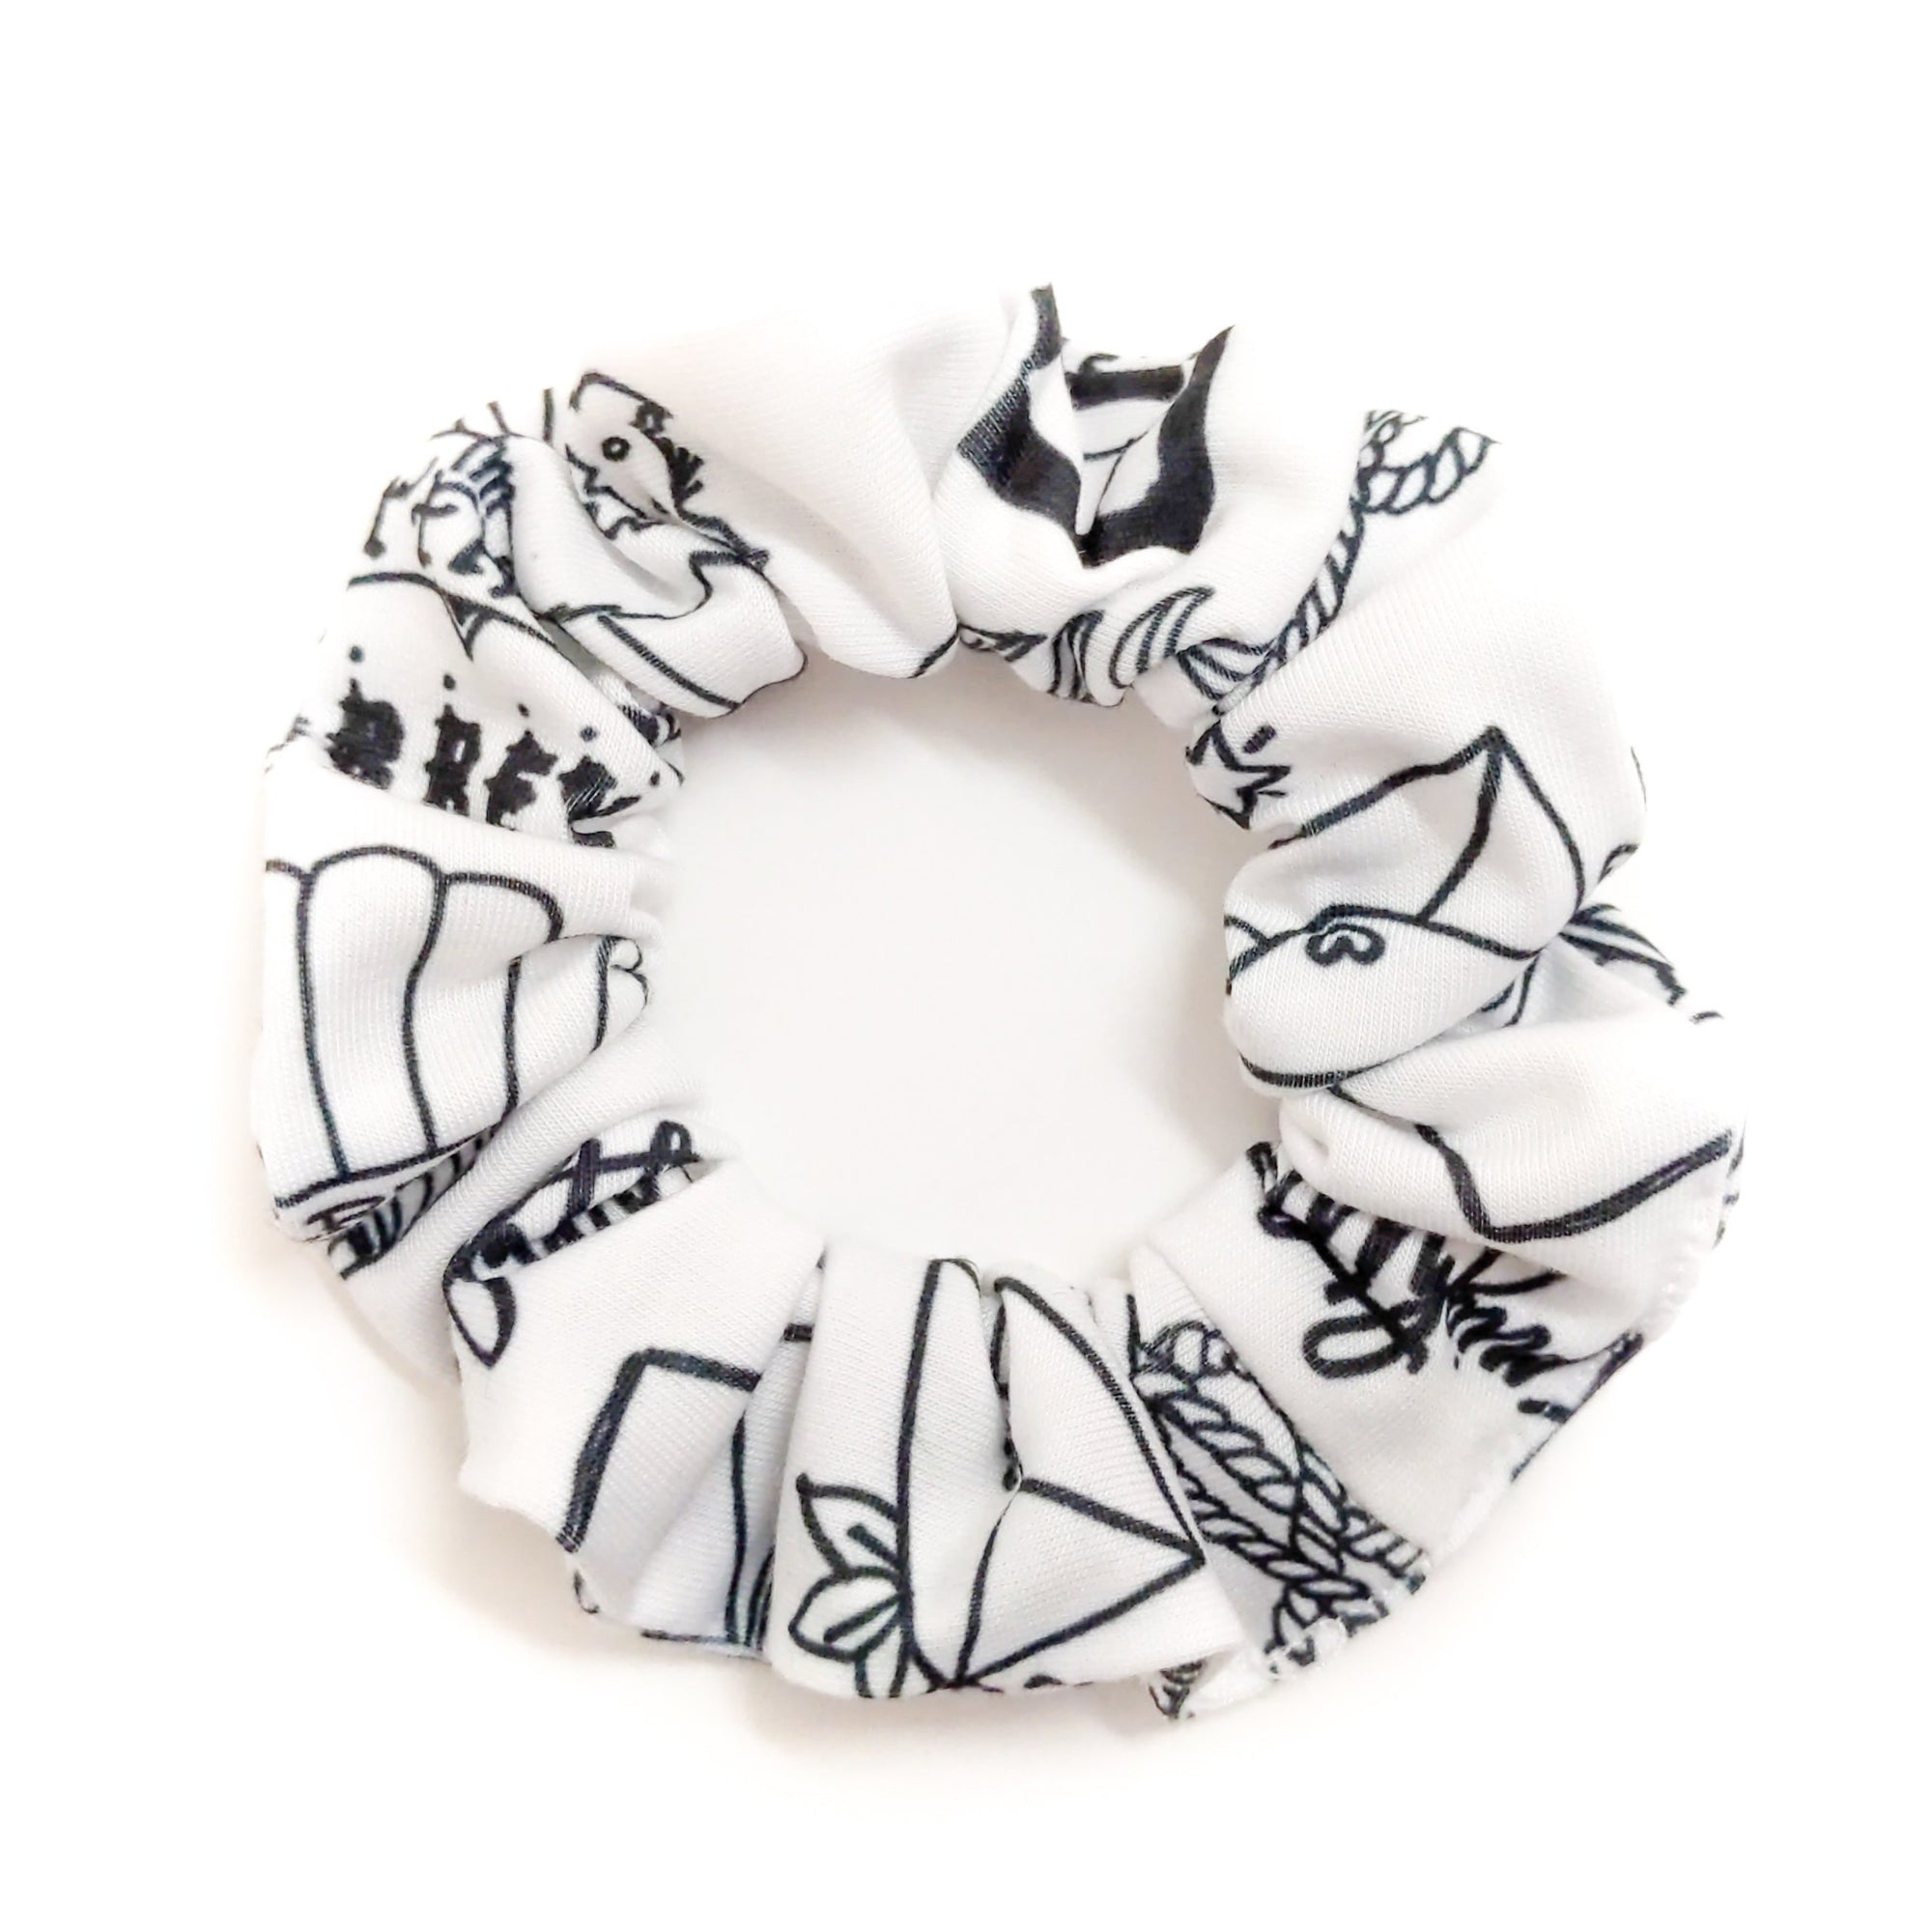 Jane Austen Books Scrunchie